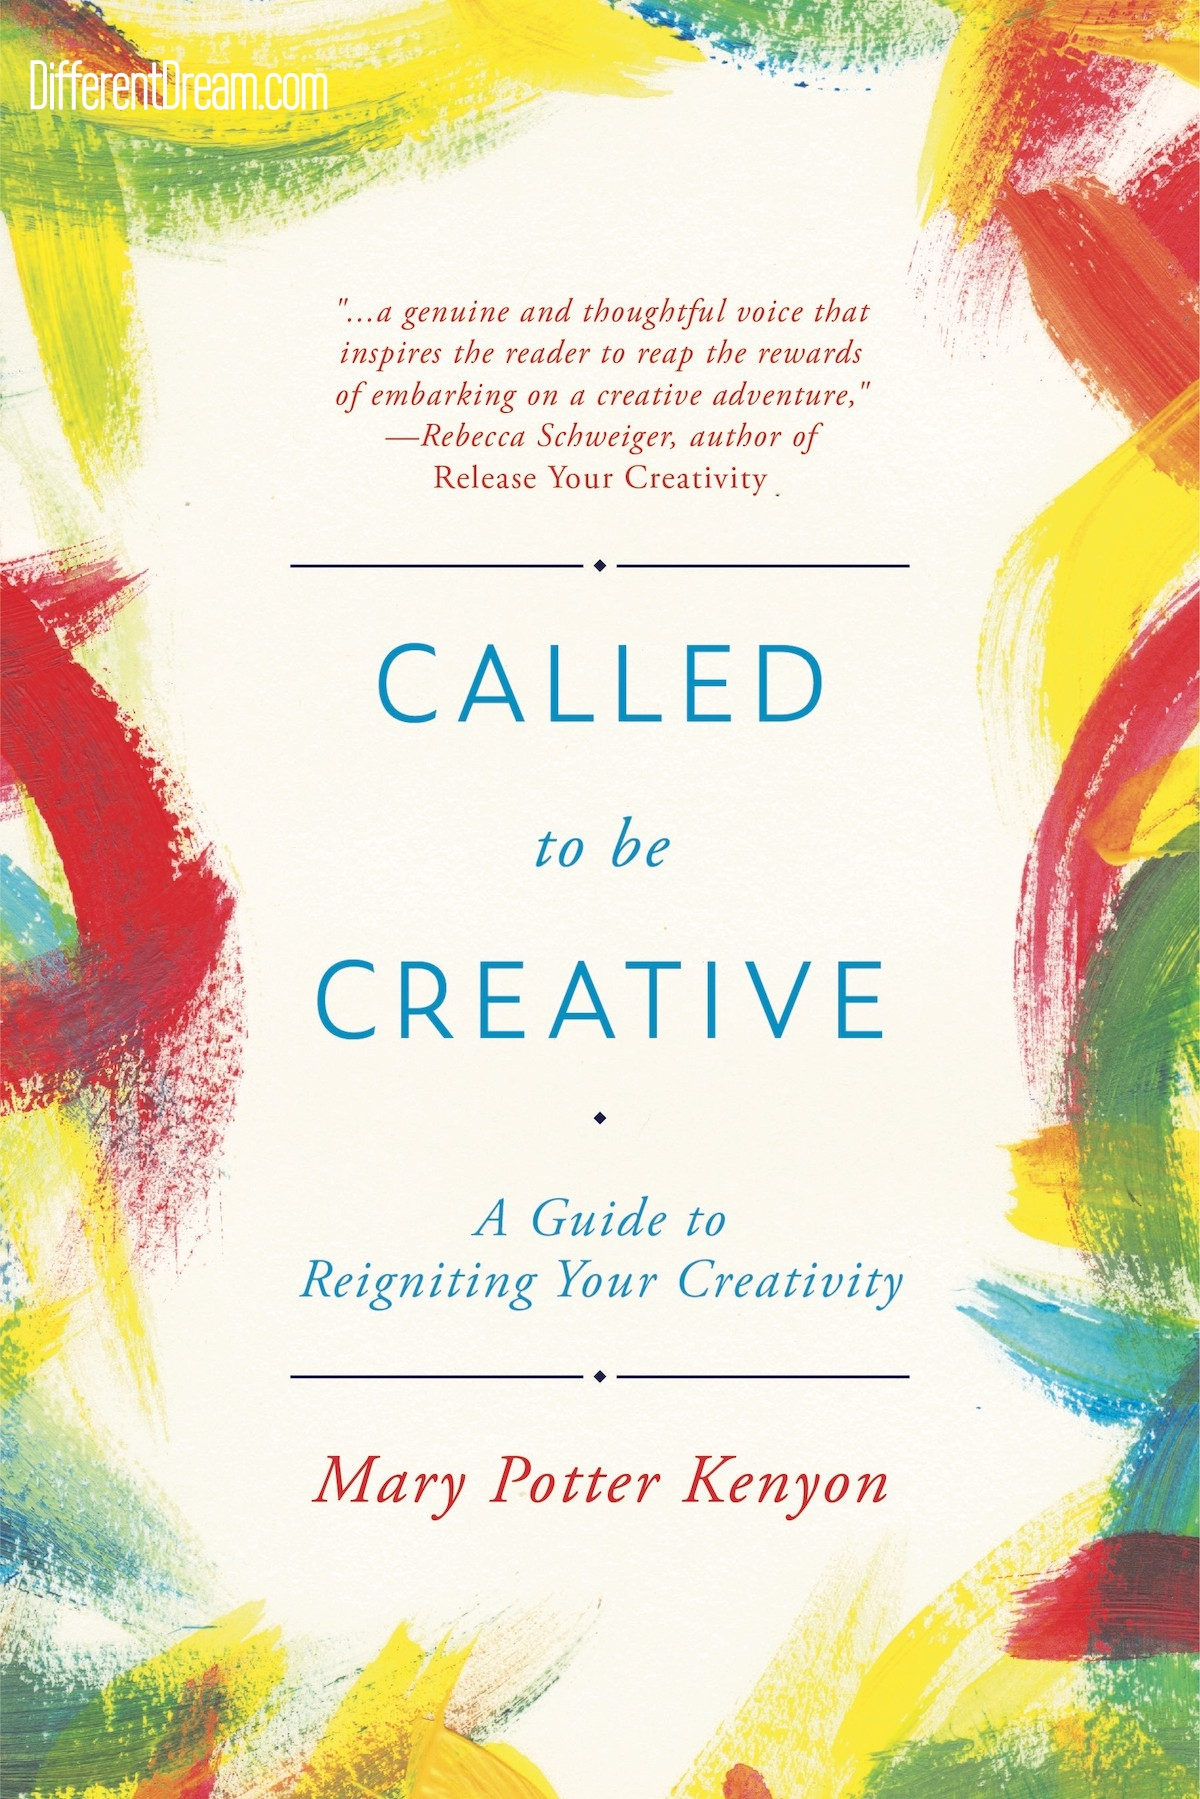 Caregivers who feel called to be creative often struggle to find time for themselves. Author and mom Mary Kenyon offers 5 ideas for creative endeavors.